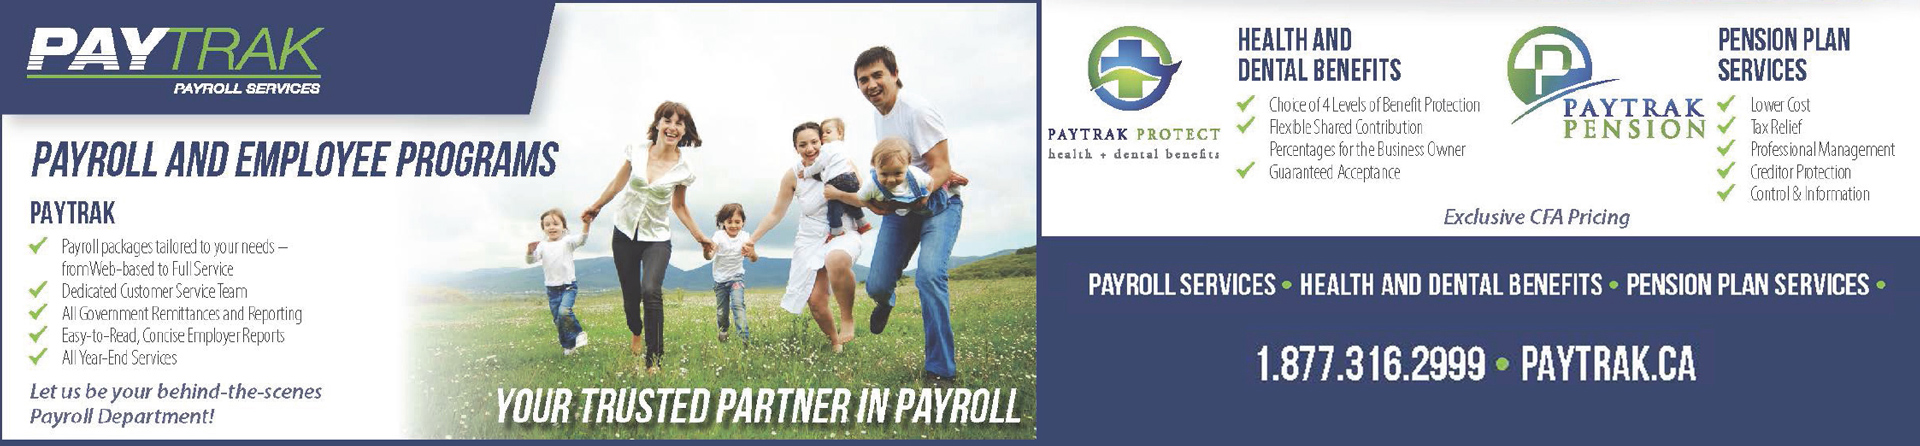 This image is of a banner advertising PayTrak